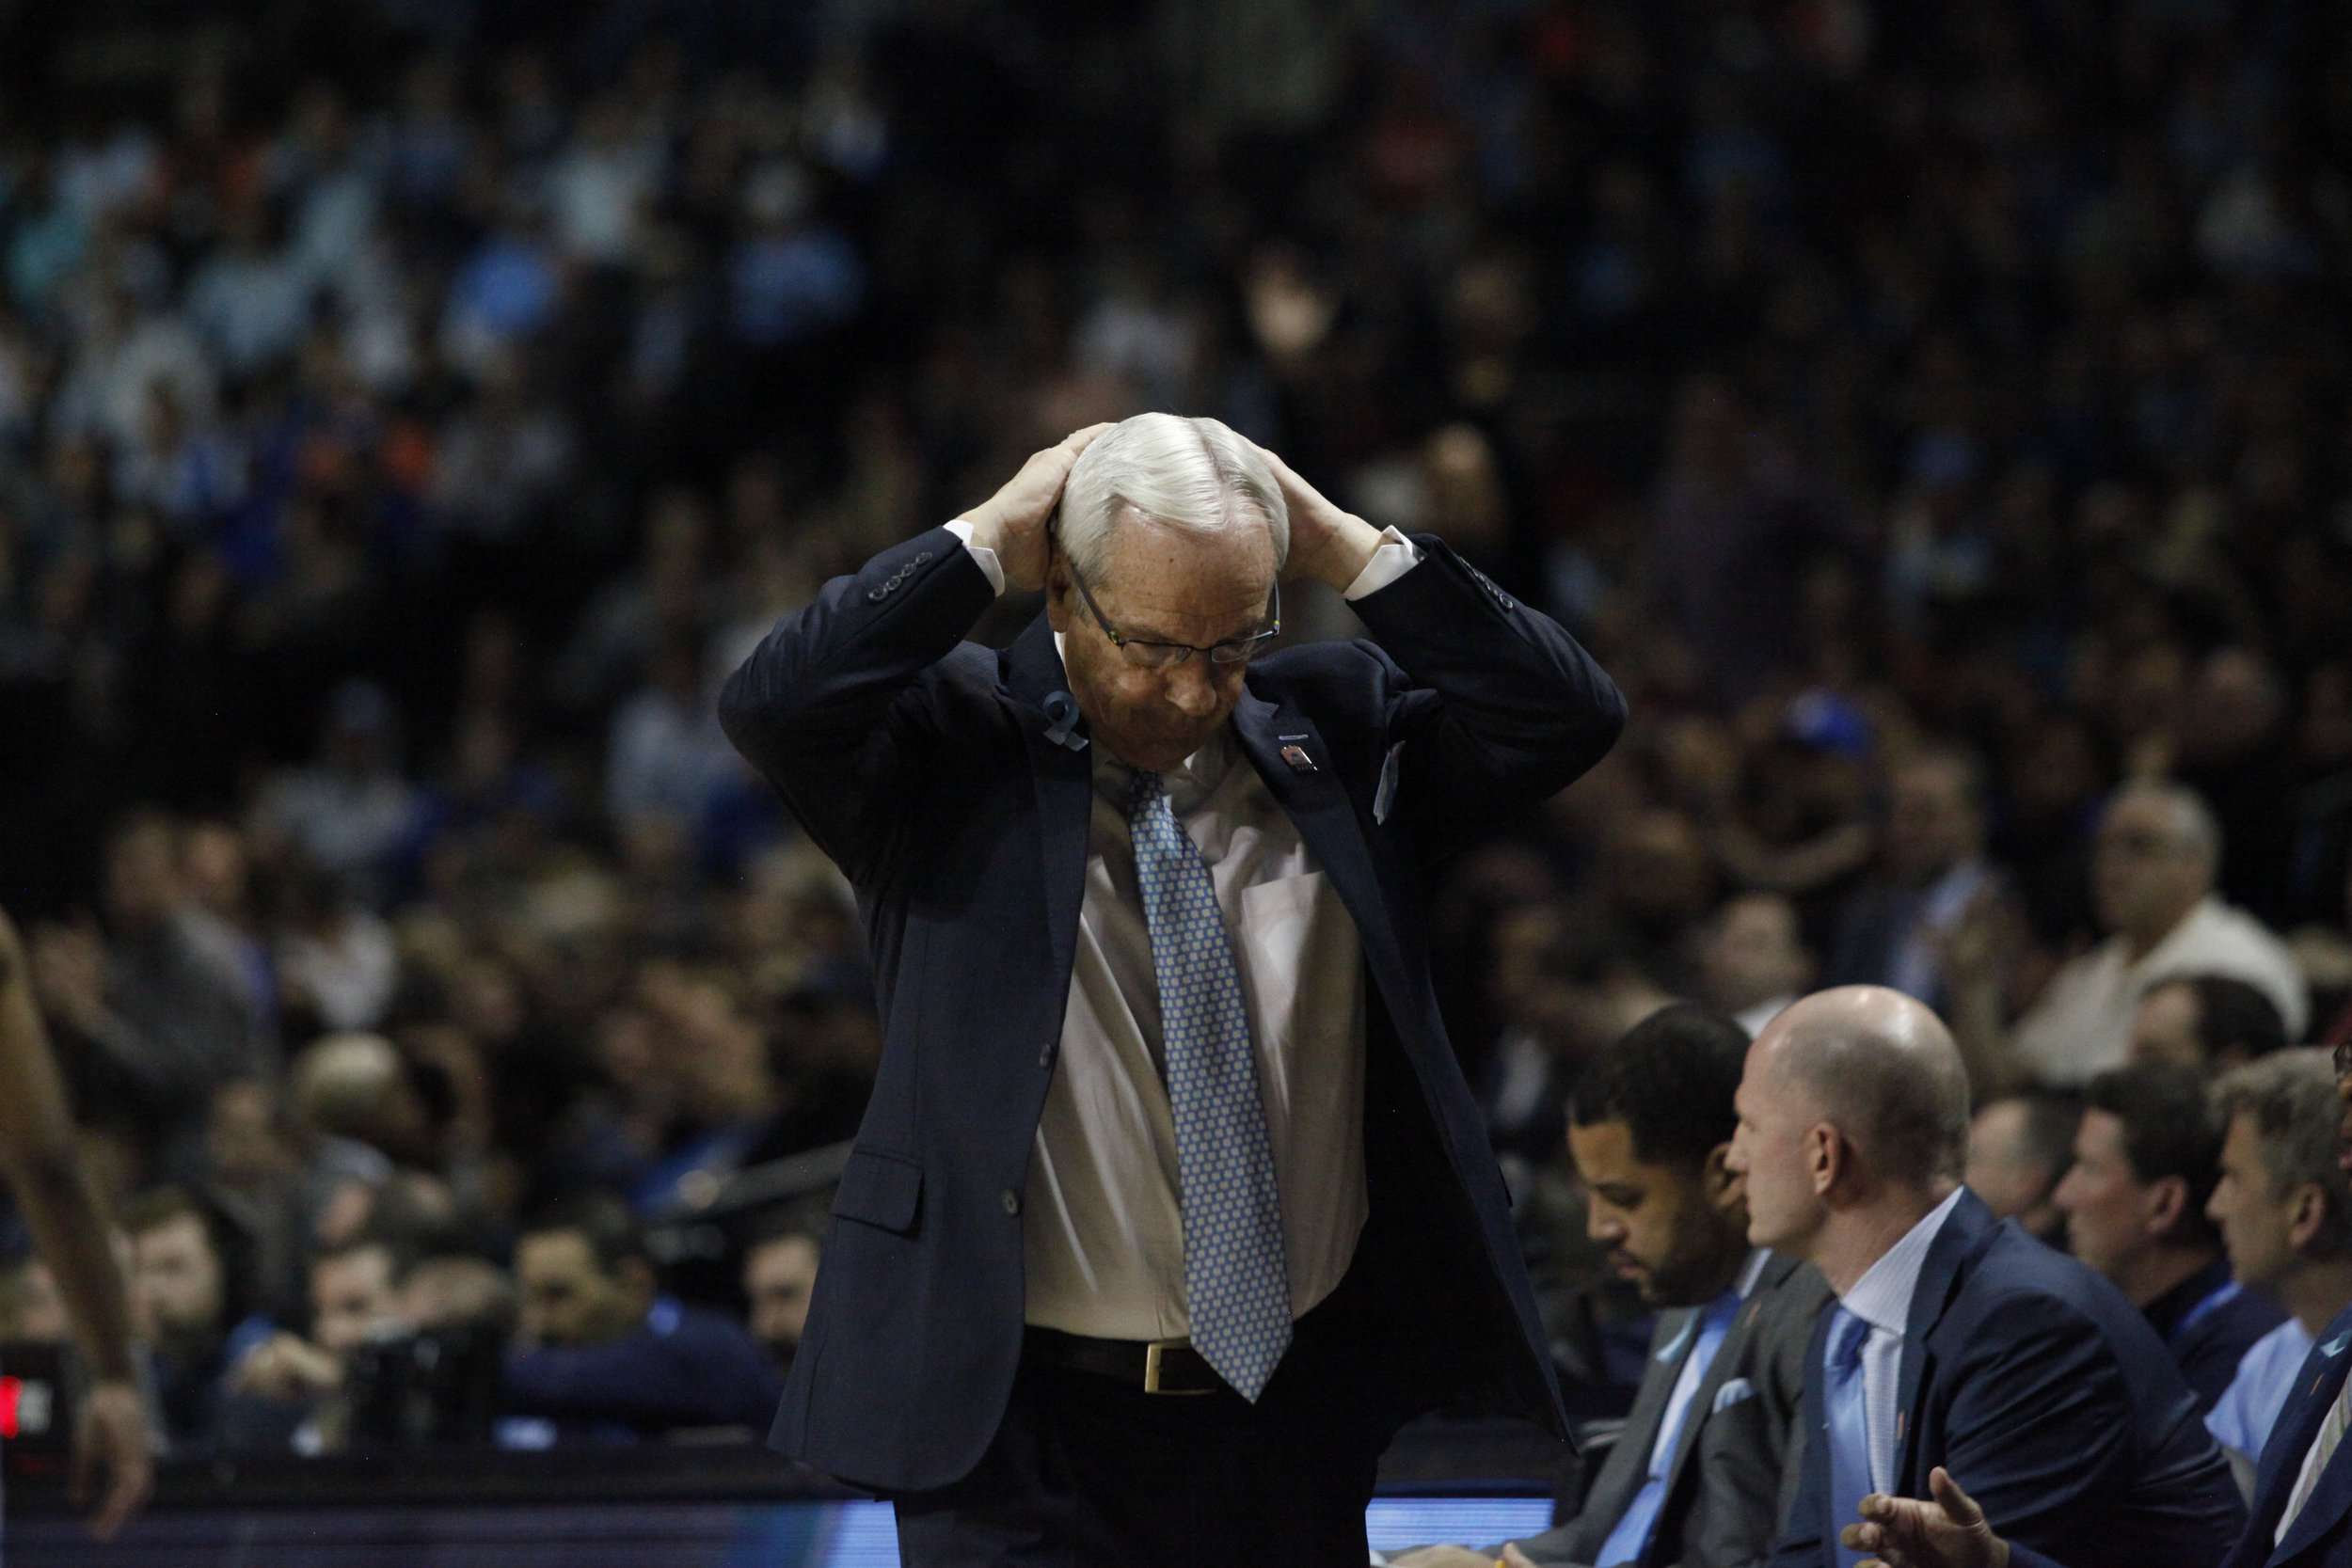 UNC head coach Roy Williams puts his hands on his head as he walks back to his seat during the second round of the NCAA Tournament.